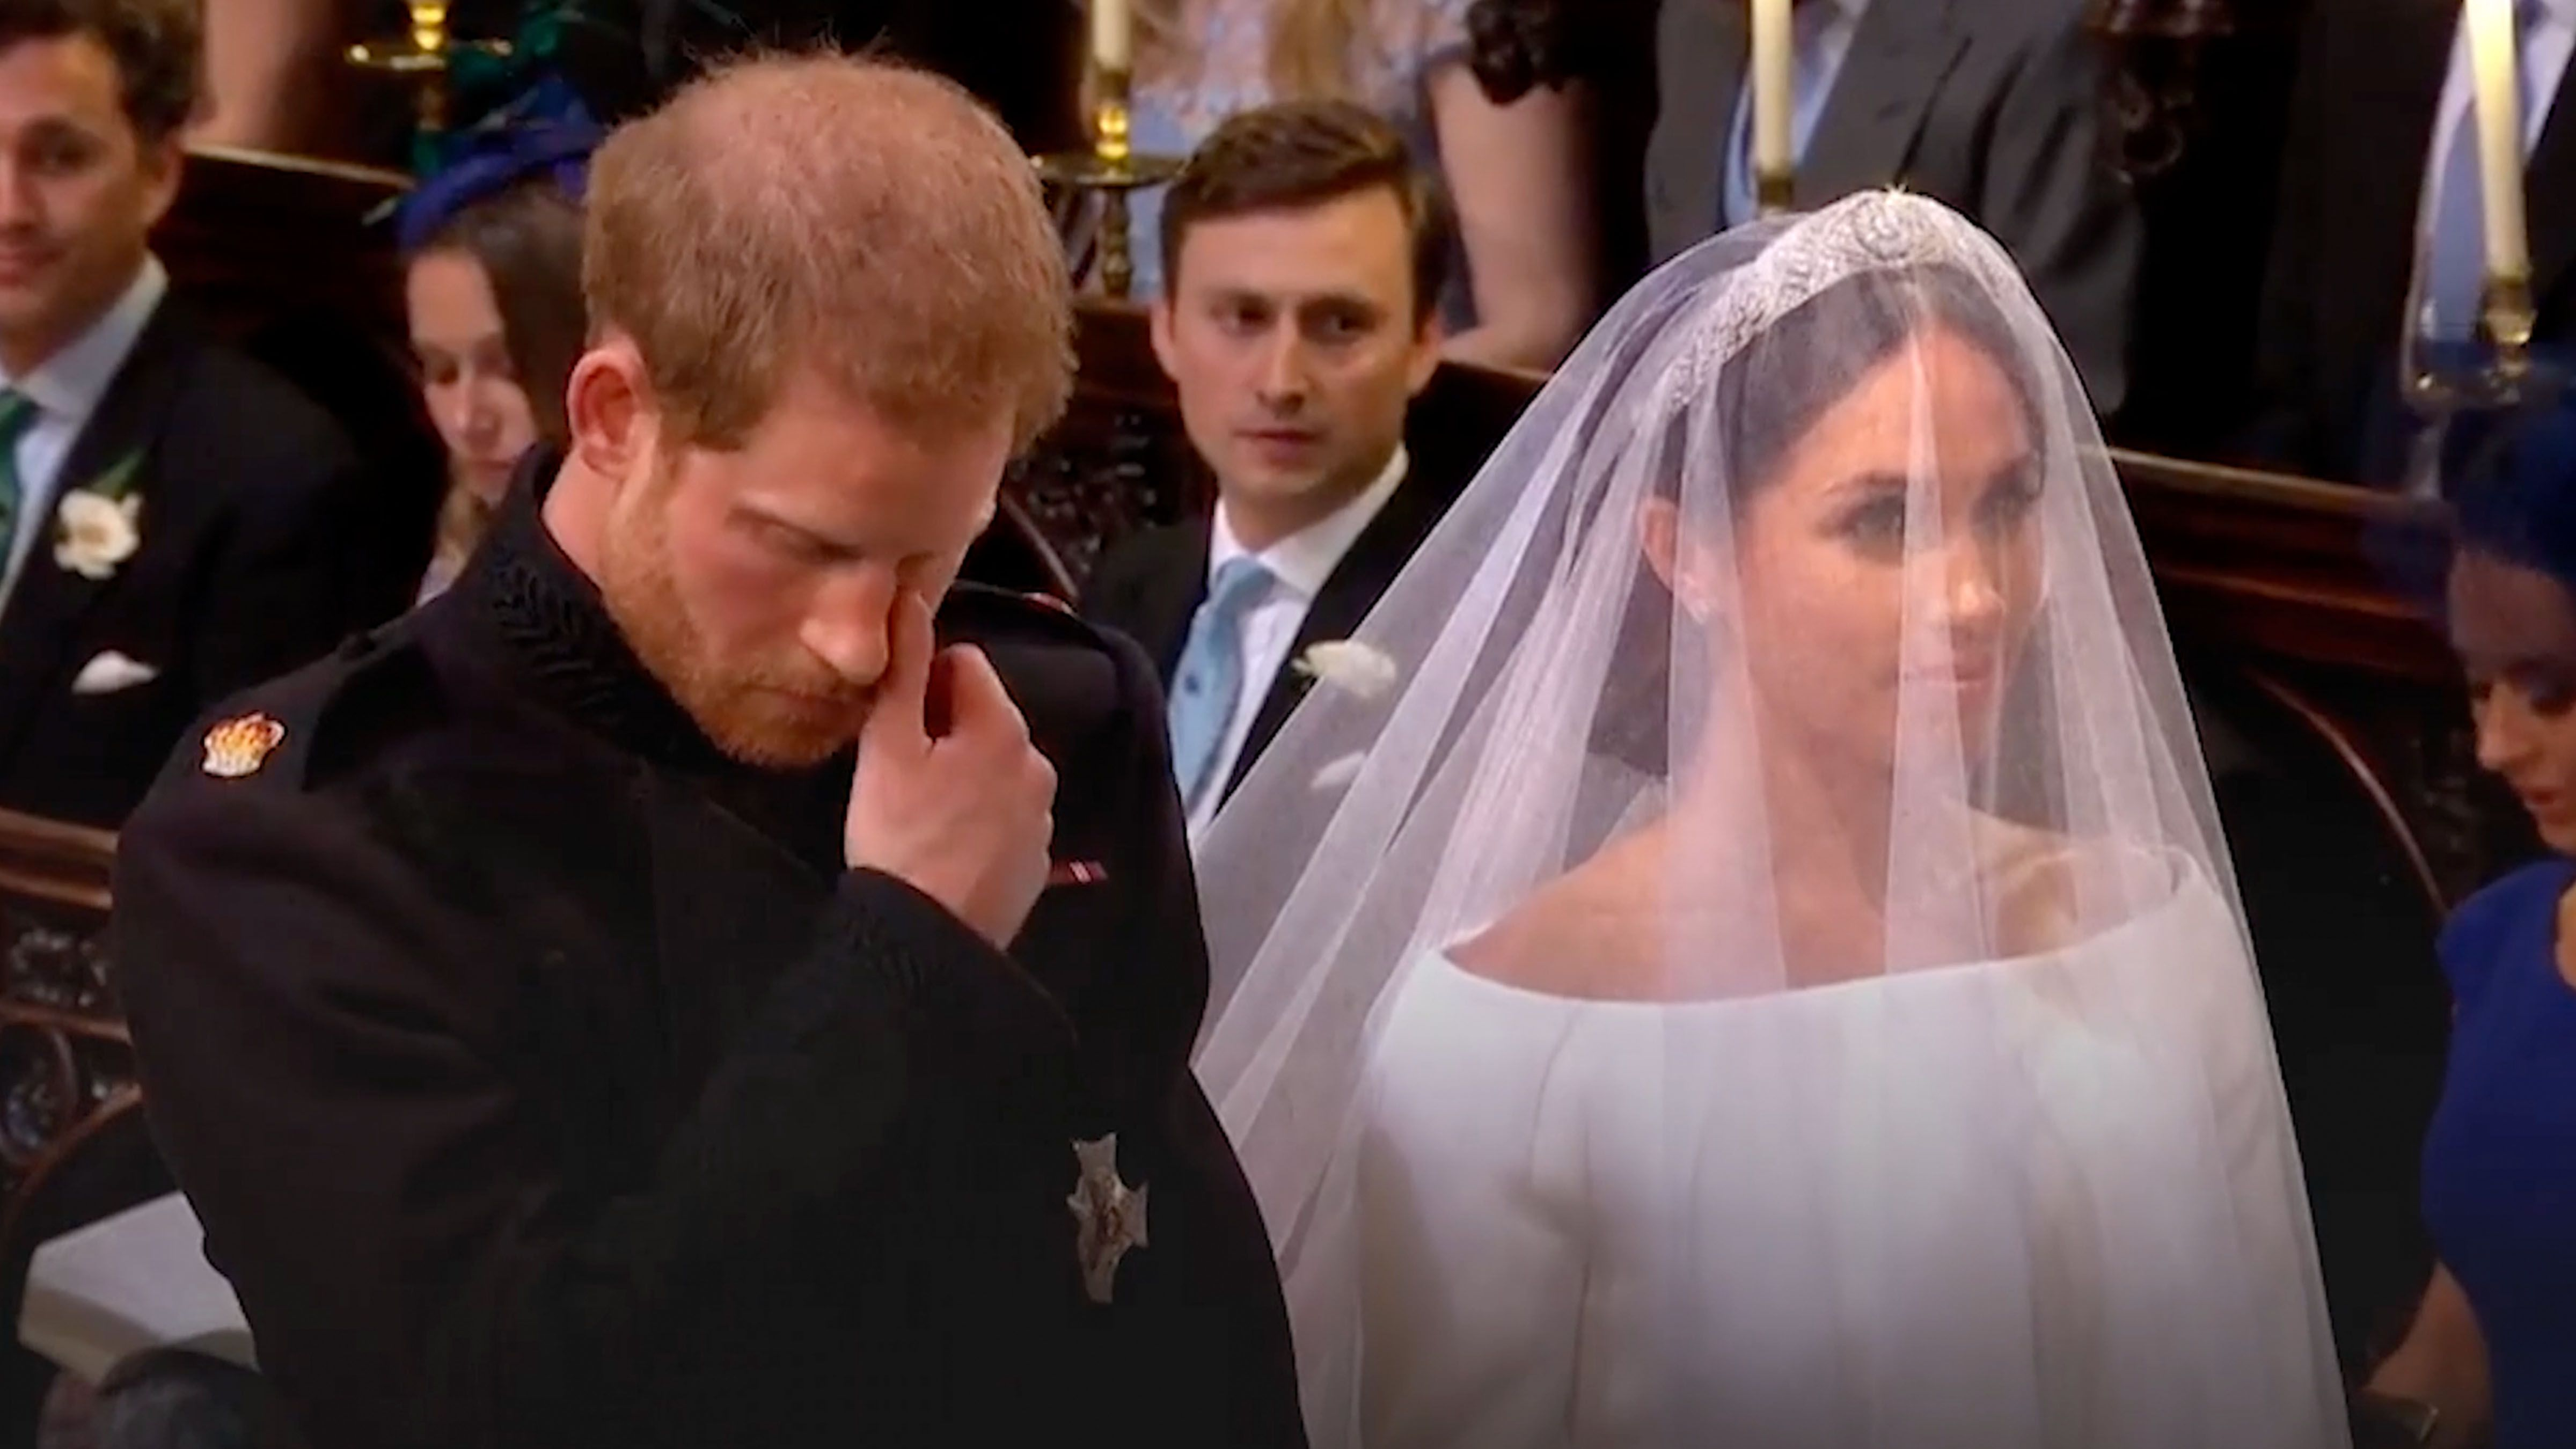 Meghan Markle and Prince Harry Gave Each Other Incredibly Romantic Gifts for Their Second Anniversary